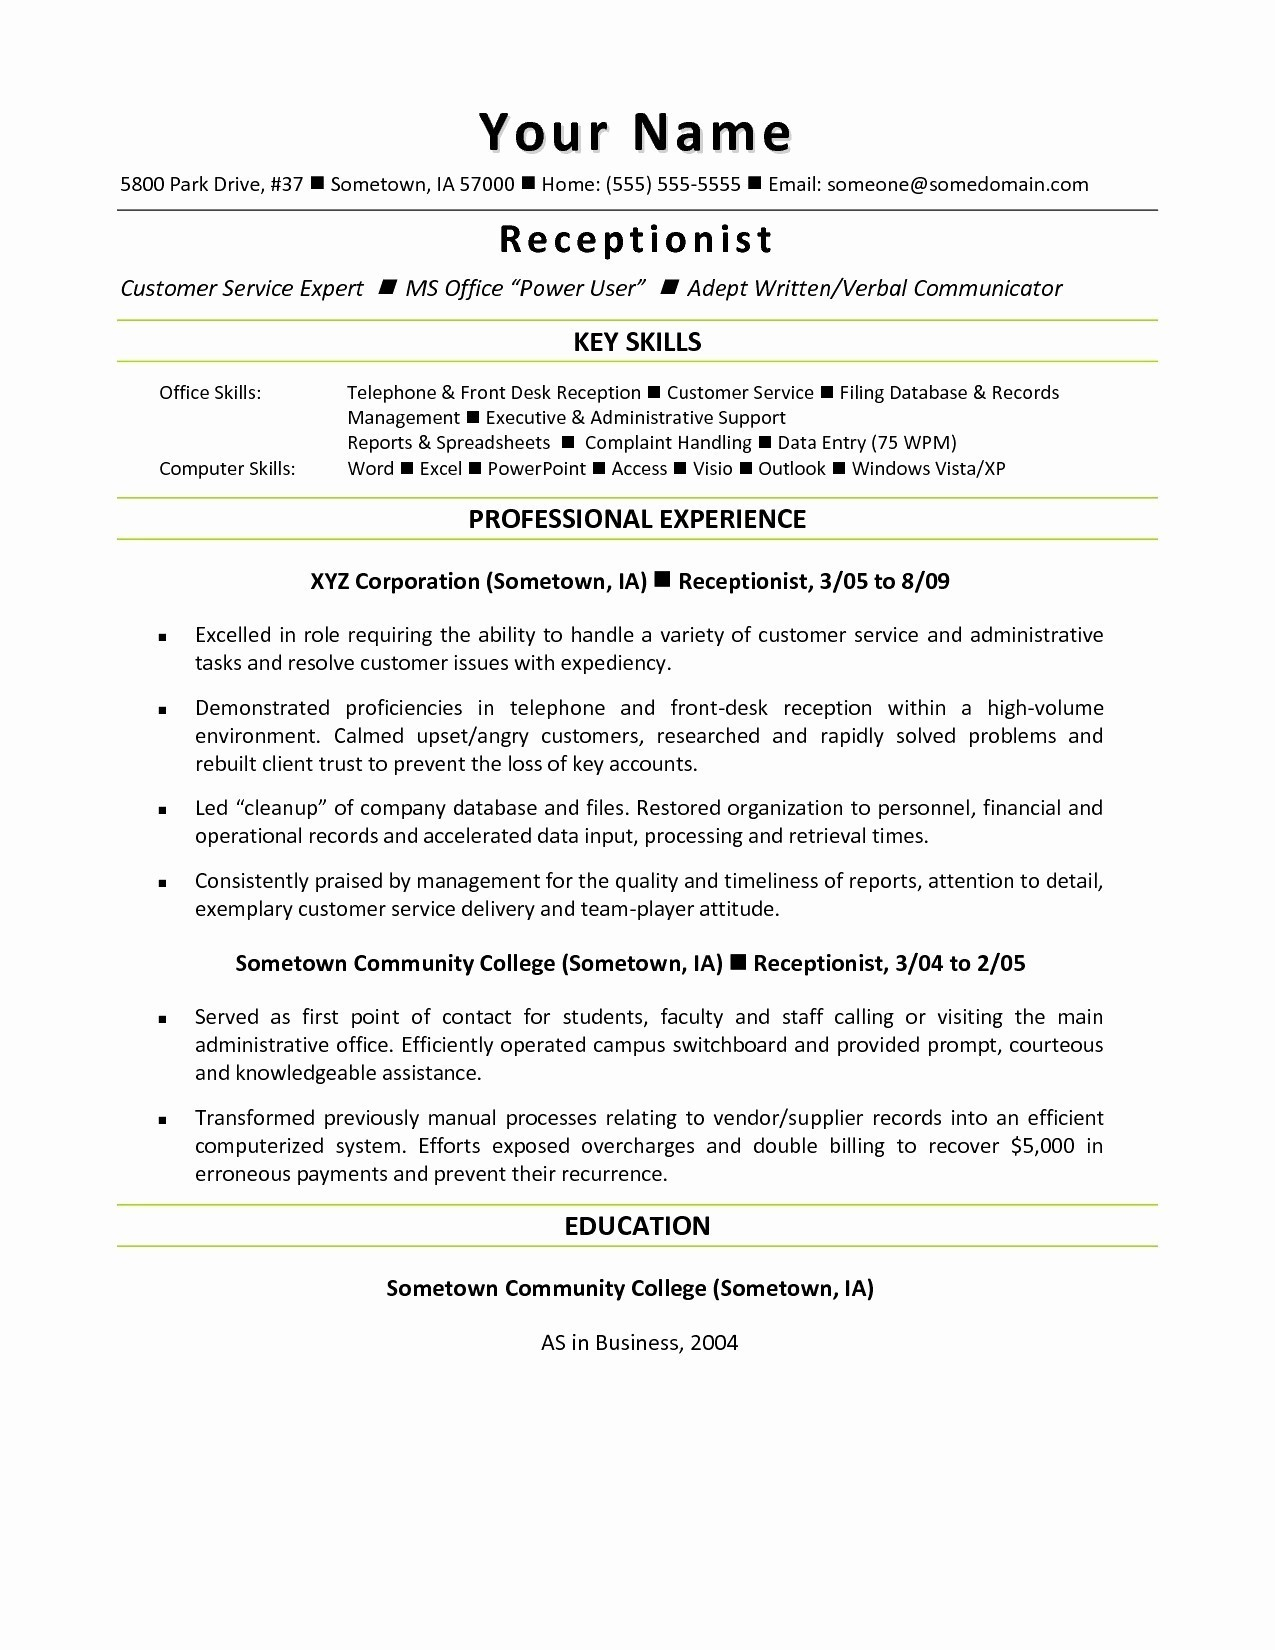 Core Competencies Resume Examples - 25 Inspirational Core Petencies Resume